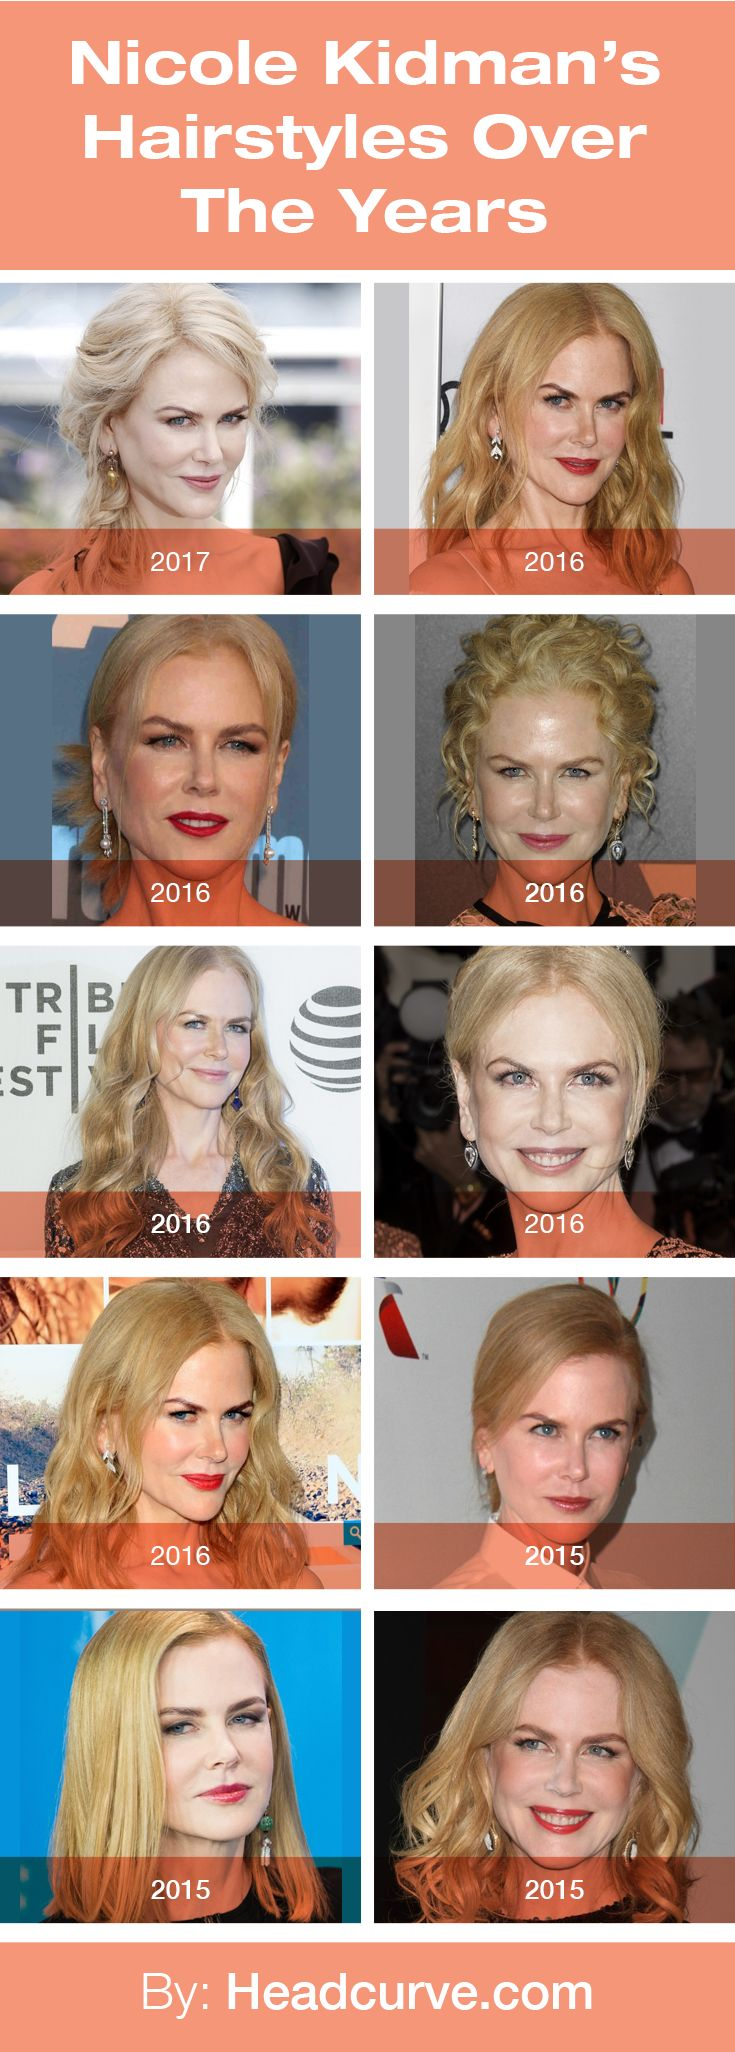 Nicole Kidman's Hairstyles Over the Years